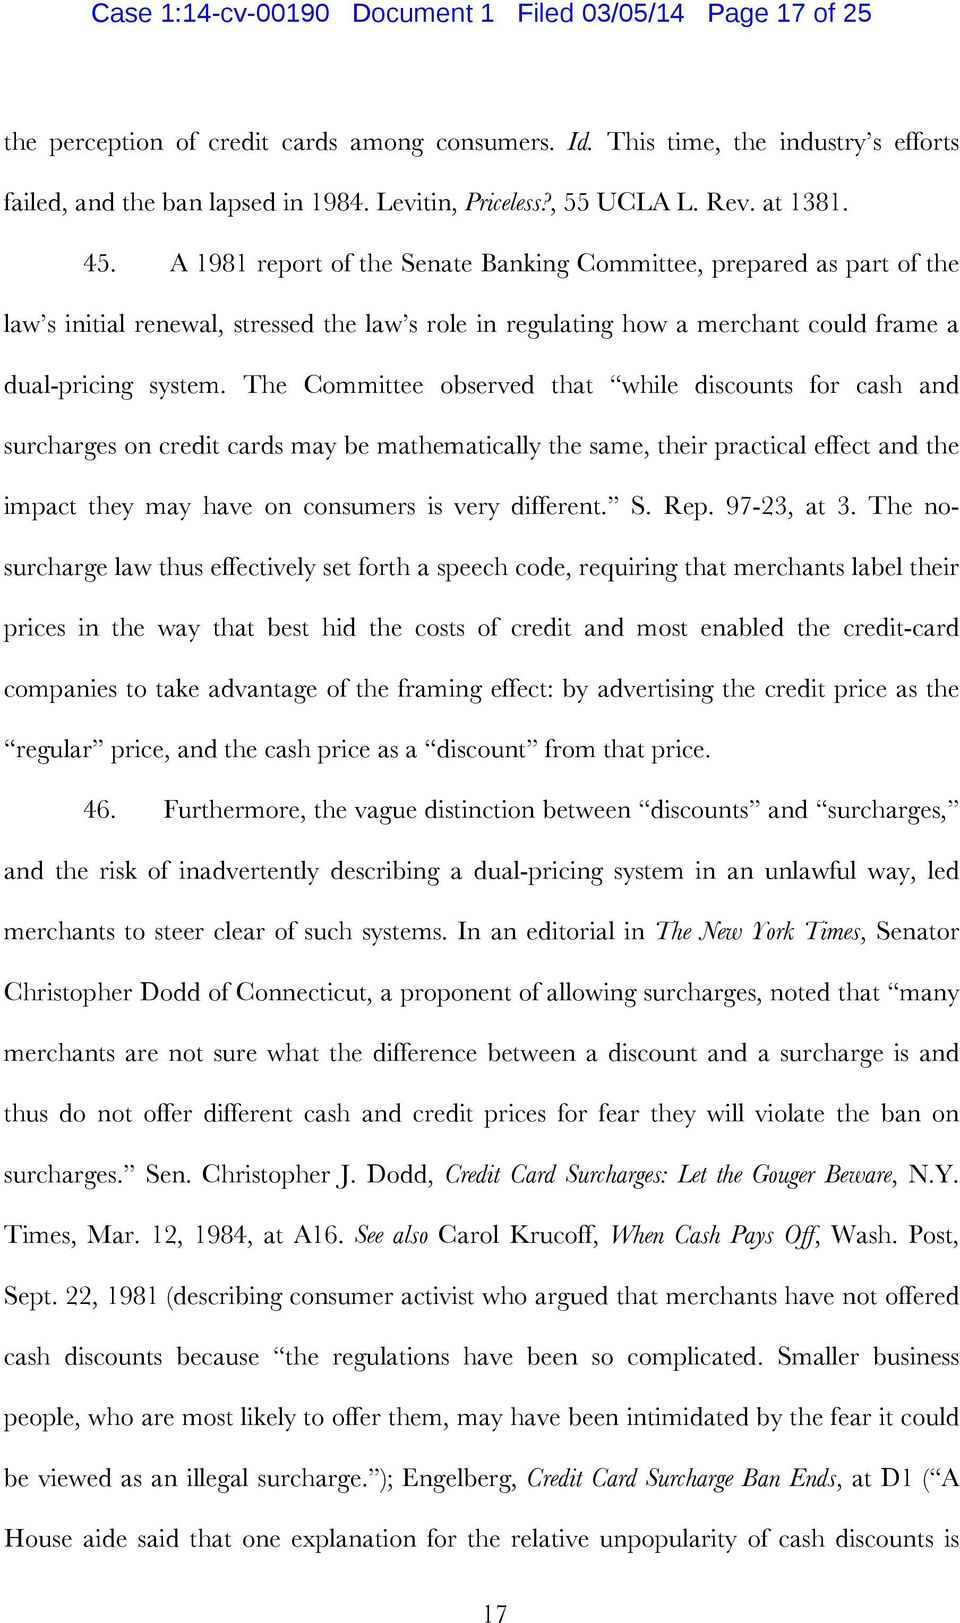 A 1981 report of the Senate Banking Committee, prepared as part of the law s initial renewal, stressed the law s role in regulating how a merchant could frame a dual-pricing system.